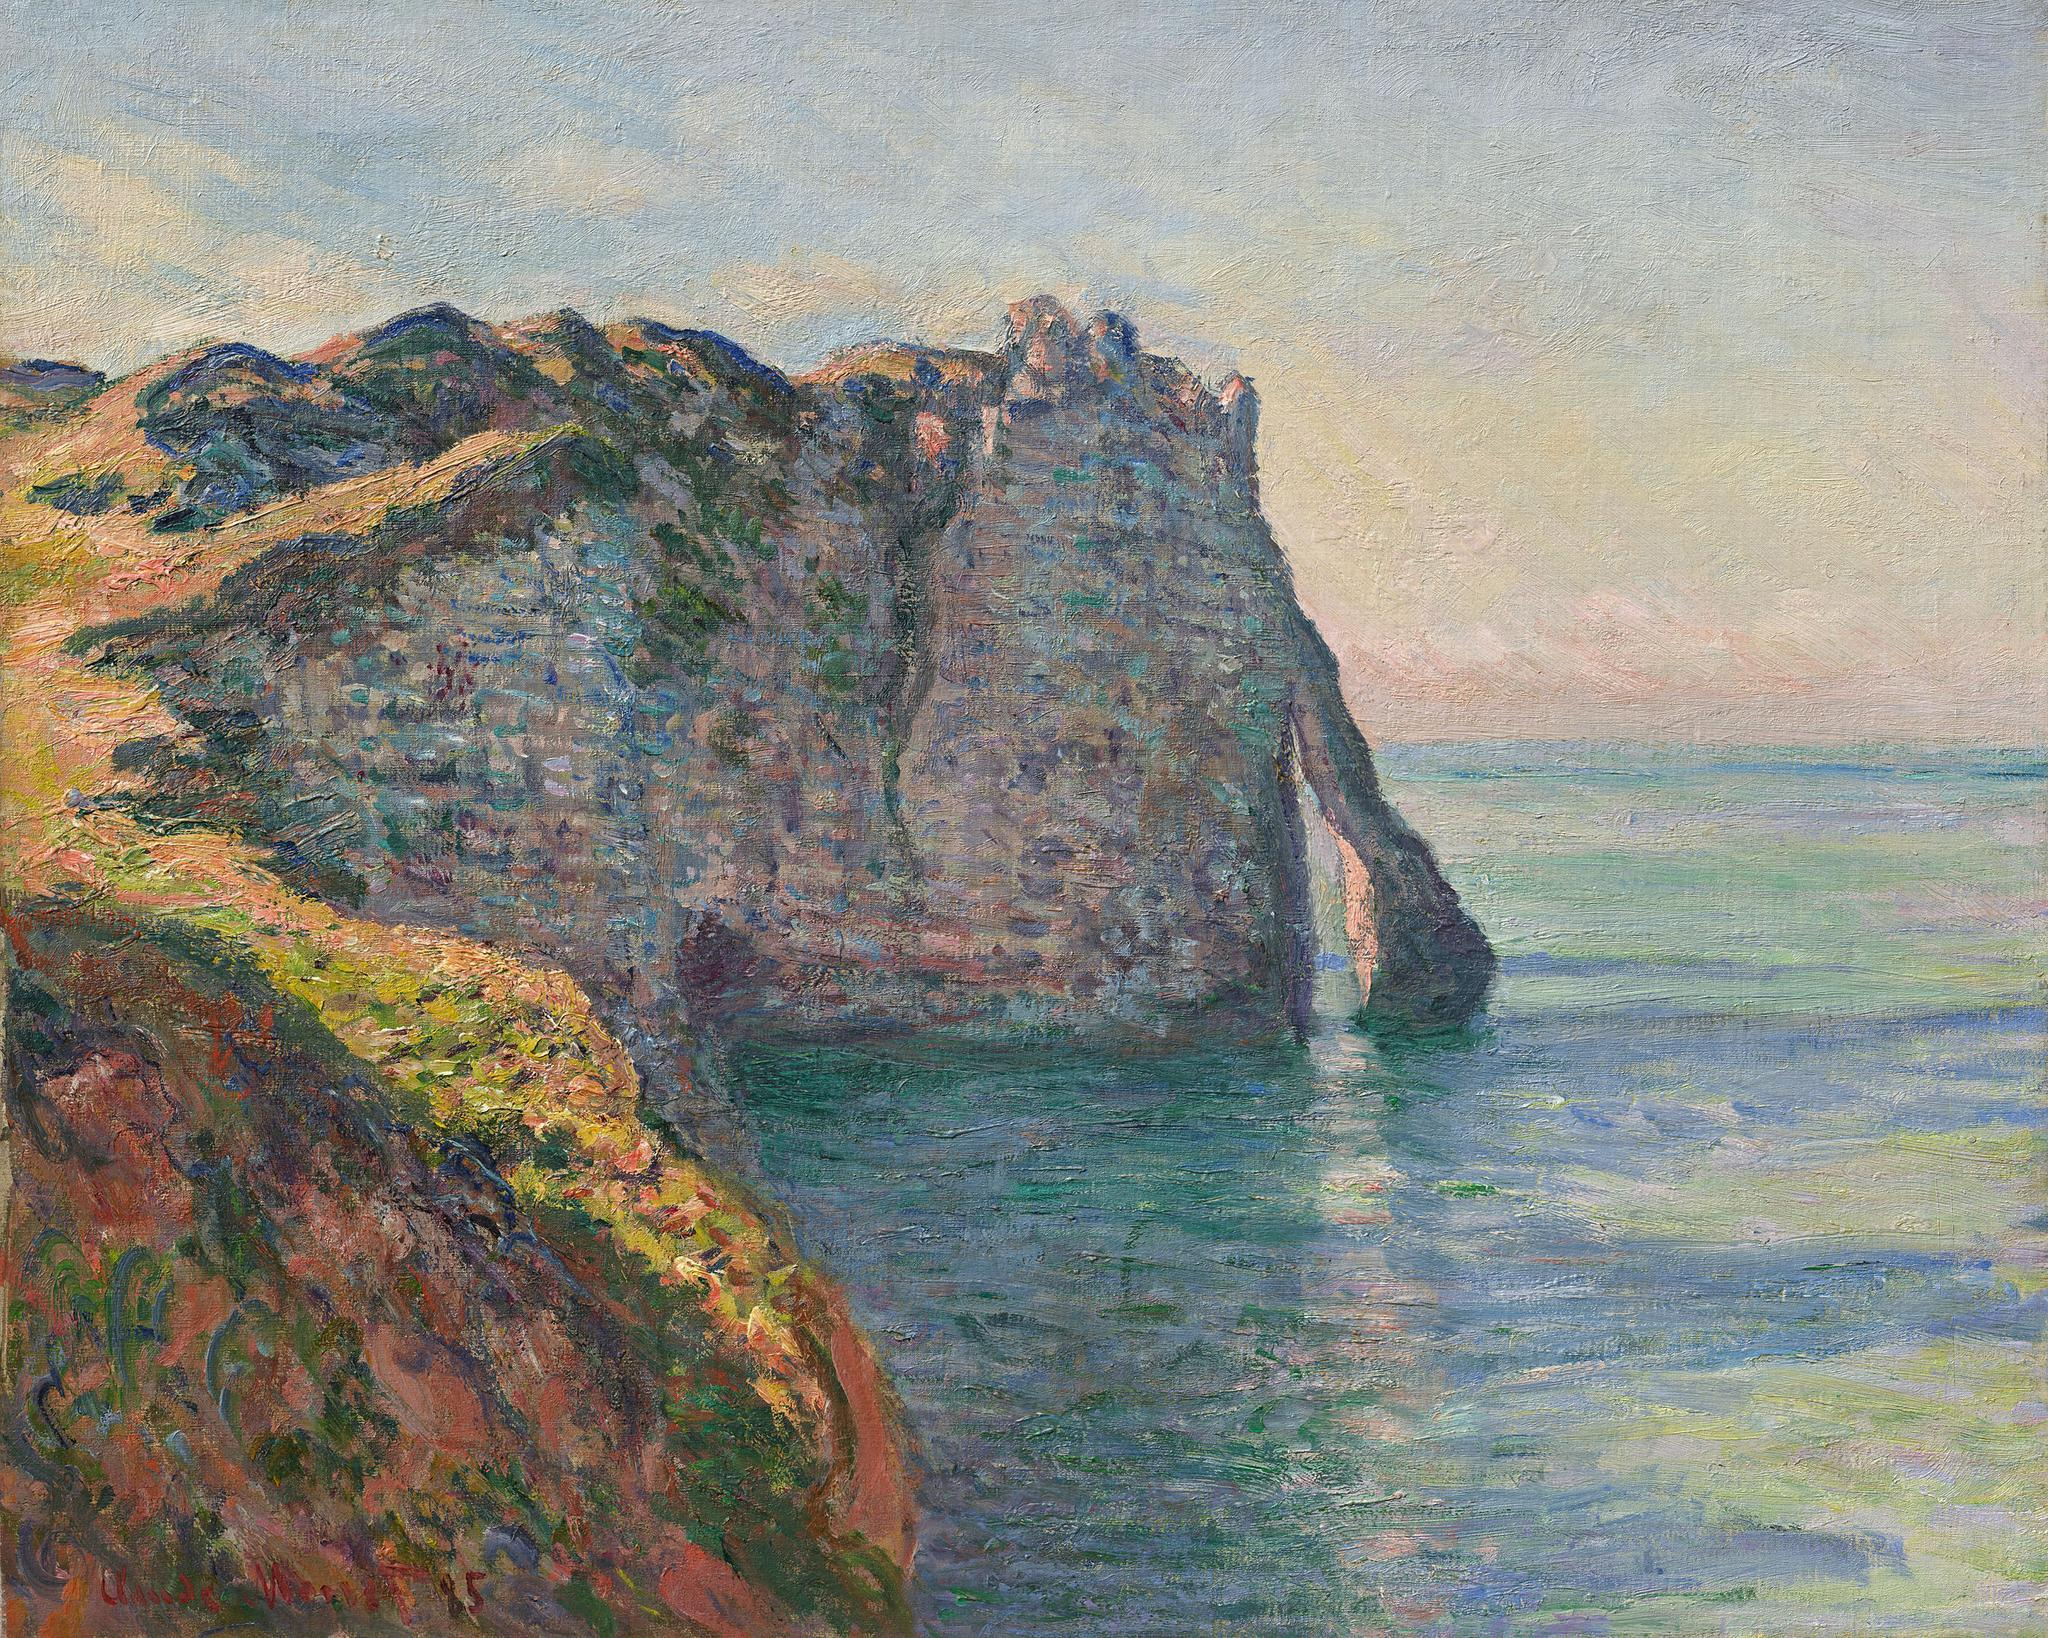 Major Monet Exhibition Will Reopen in Germany with New Protective Measures  for Museum Visitors - ArtfixDaily News Feed